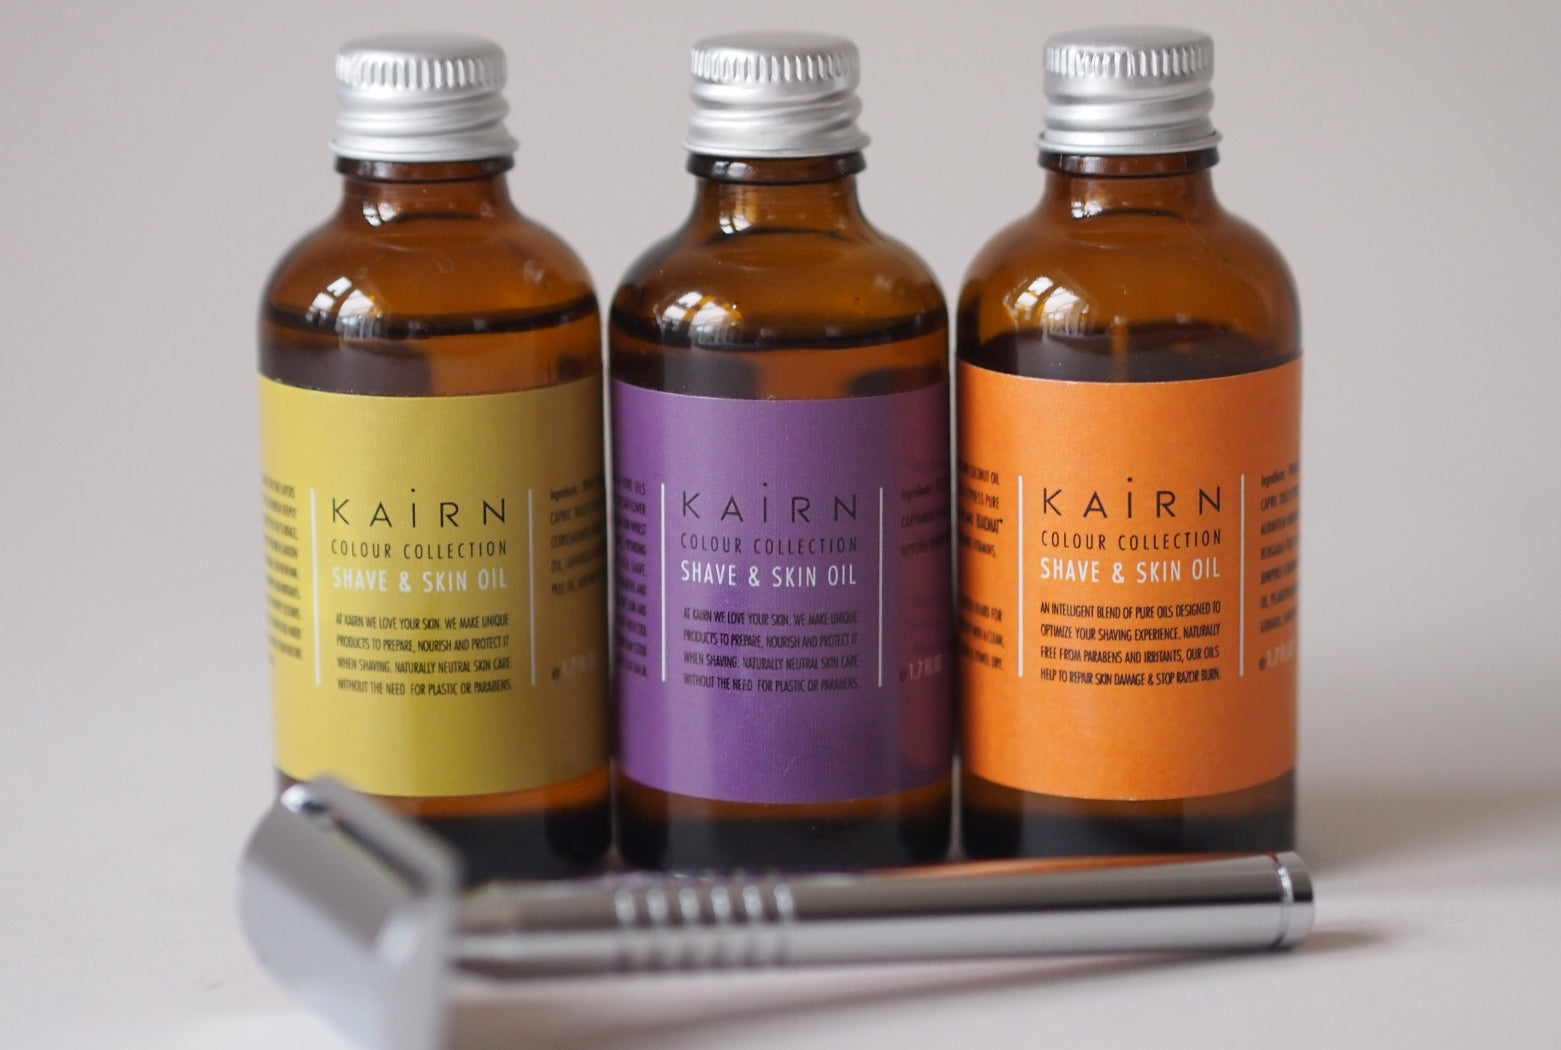 Kairn metal safety razor and product range